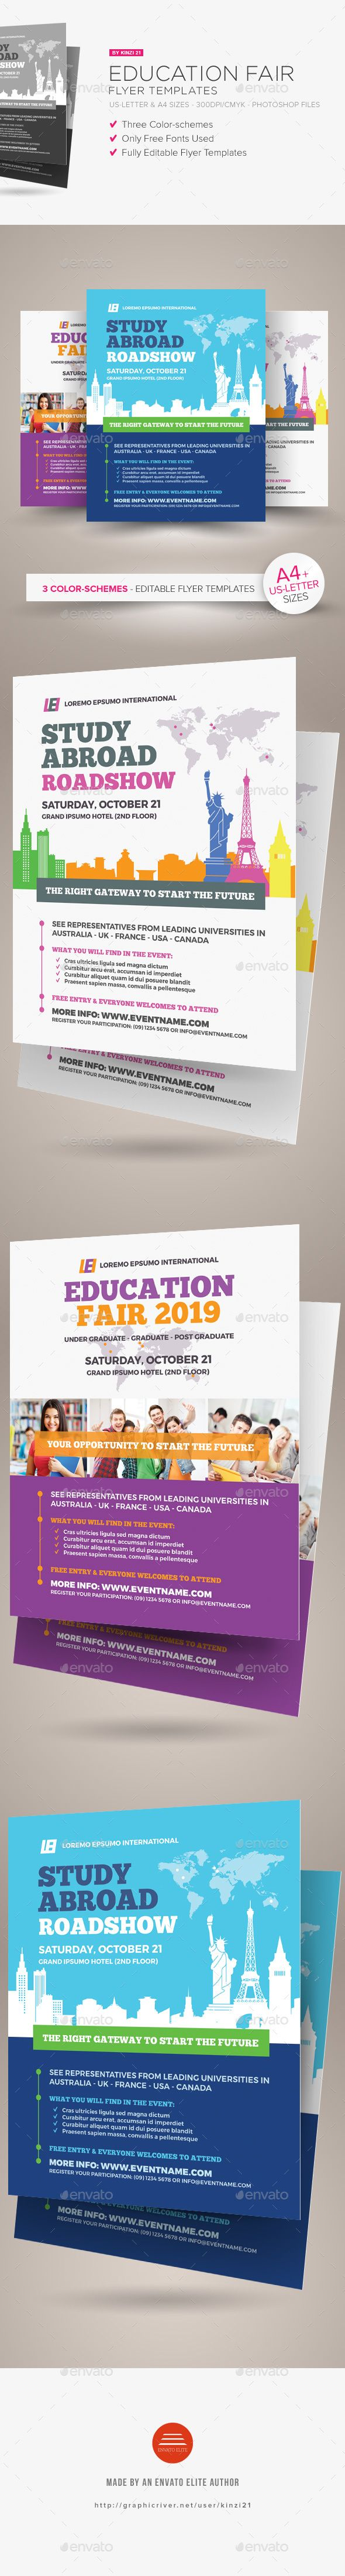 Education Fair Flyer Templates Corporate Flyers Best Flyer